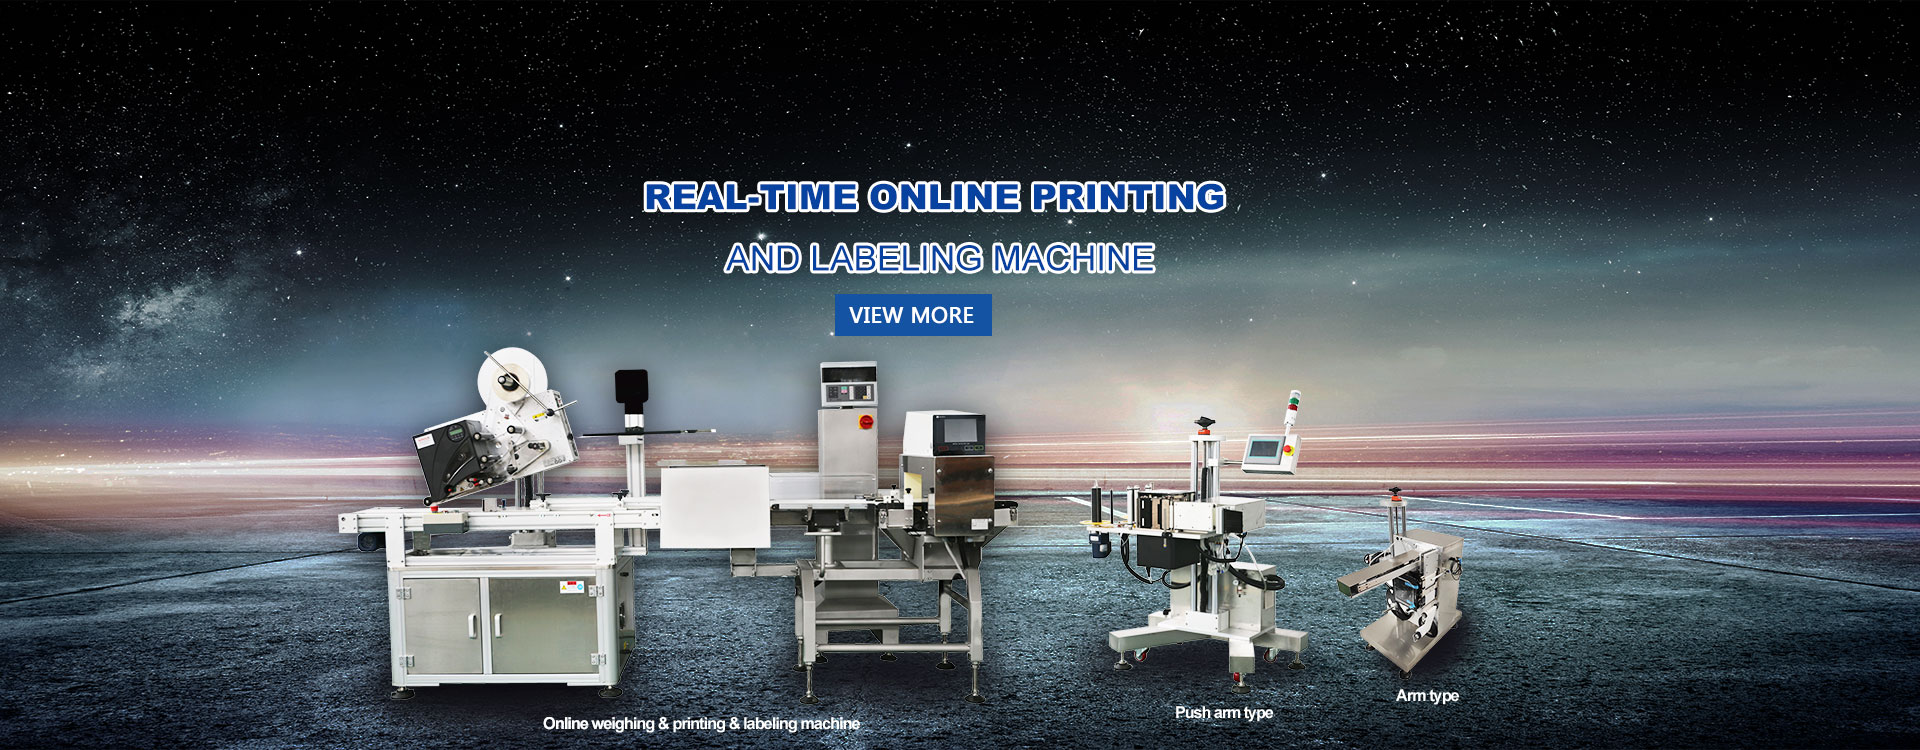 Real-time Online Printing And Labeling Machine